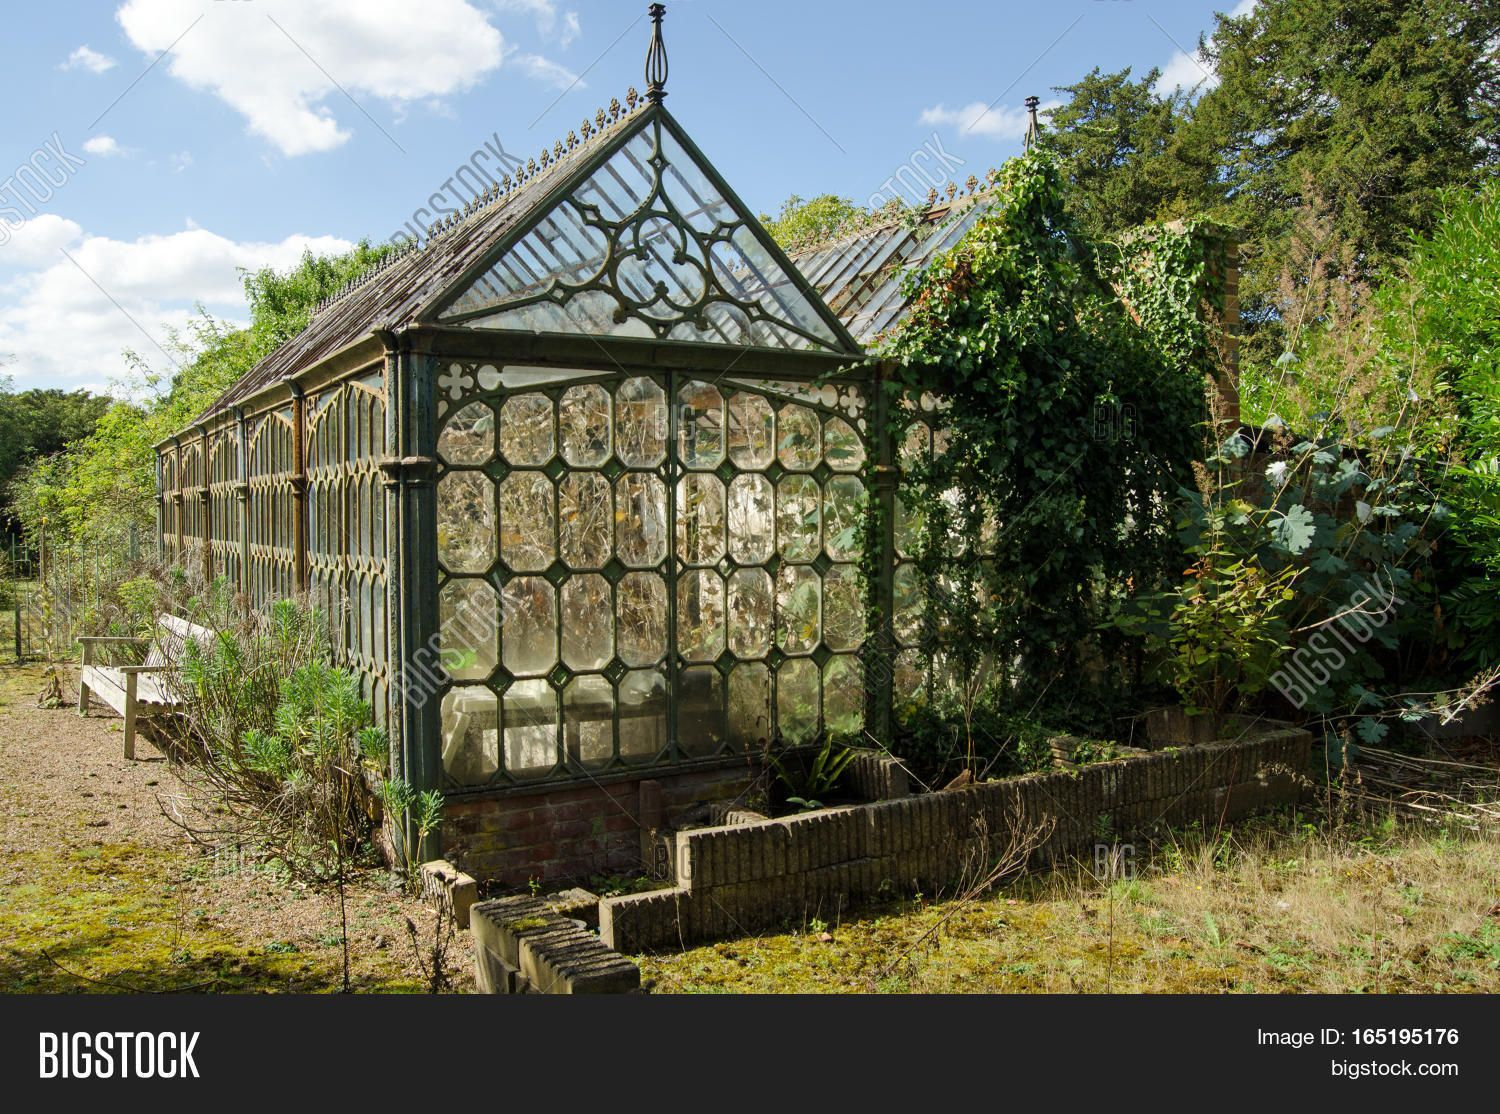 View Of An Old Victorian Cast Iron Greenhouse In An Un Loved State